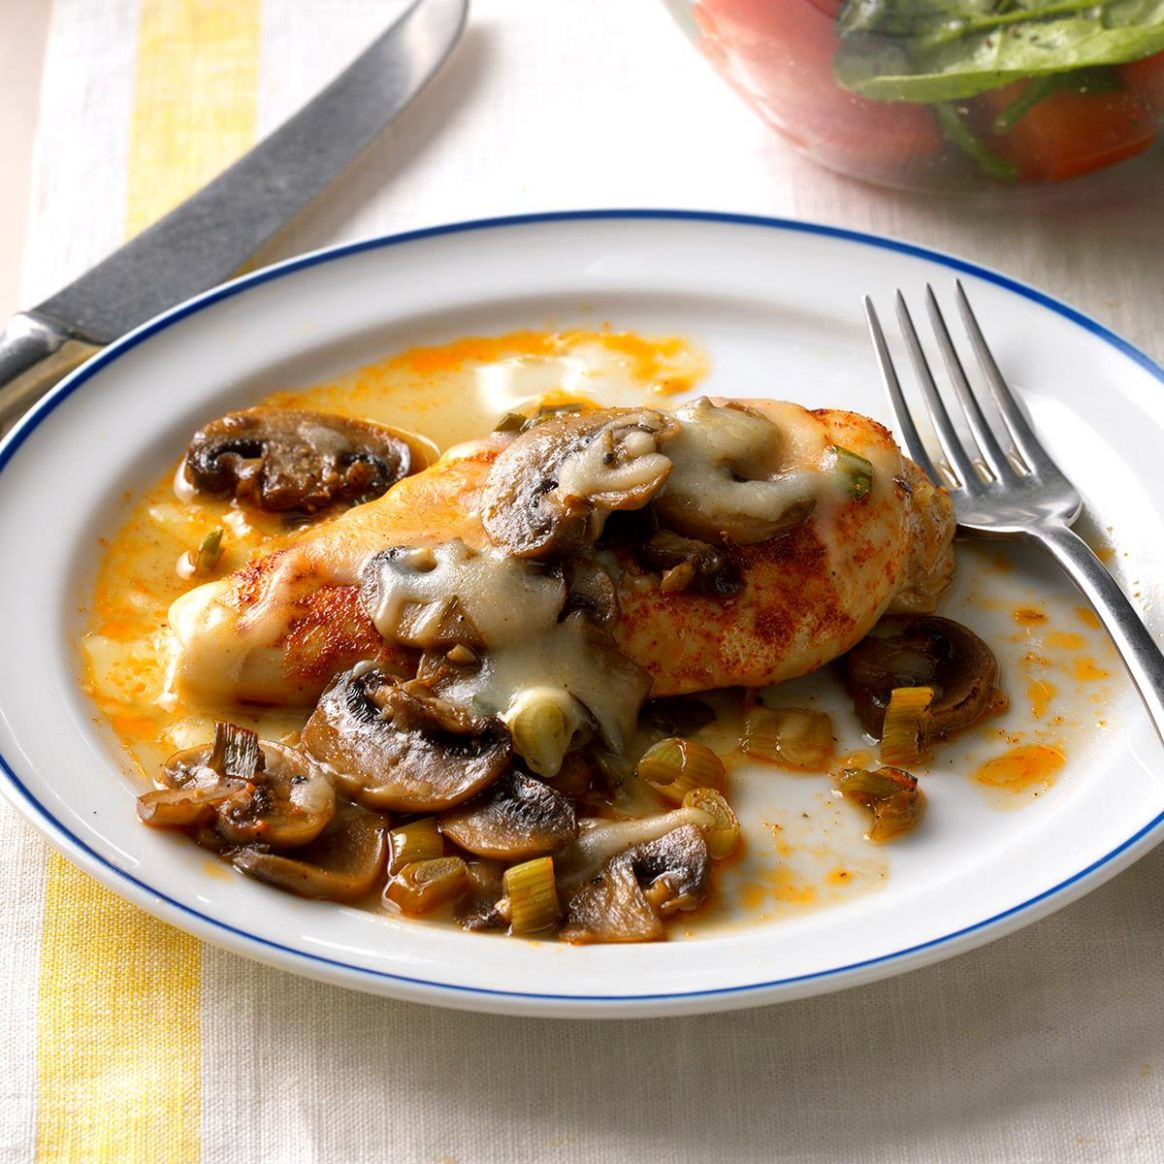 Baked Chicken and Mushrooms - Recipes Chicken Breast Mushrooms